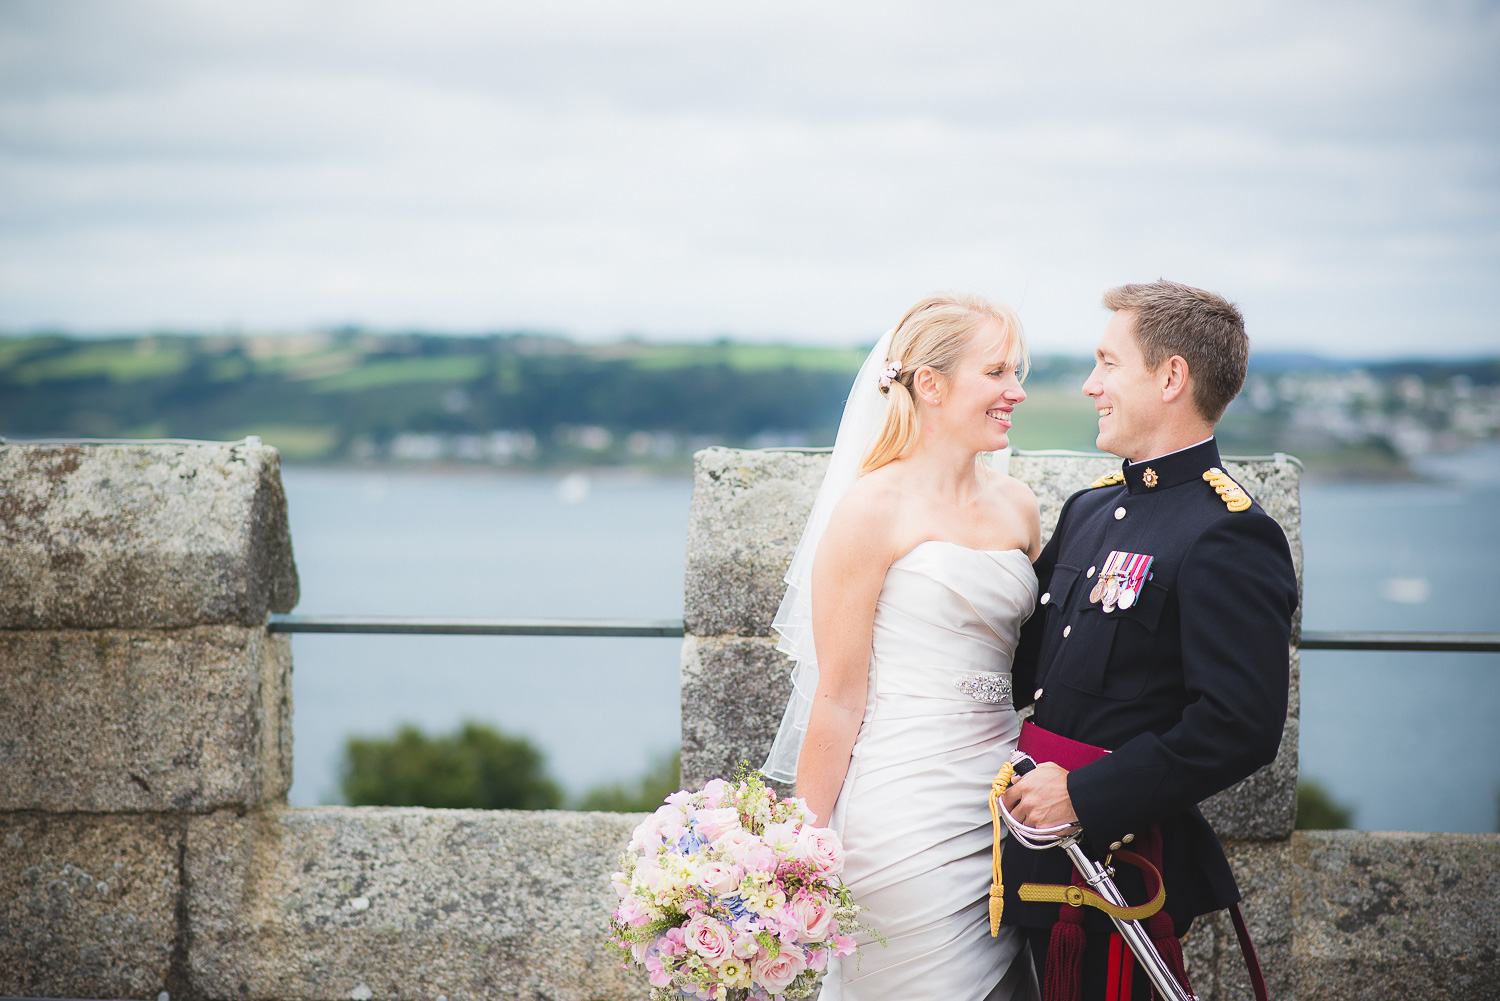 lovely natural photo of army groom and bride at wedding on a castle